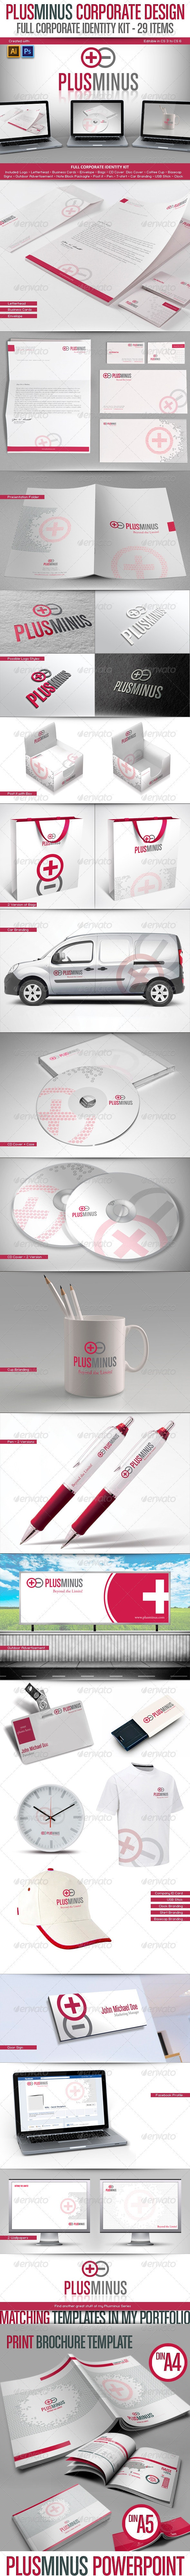 Full Corporate Identity Kit - Plusminus Series - Stationery Print Templates